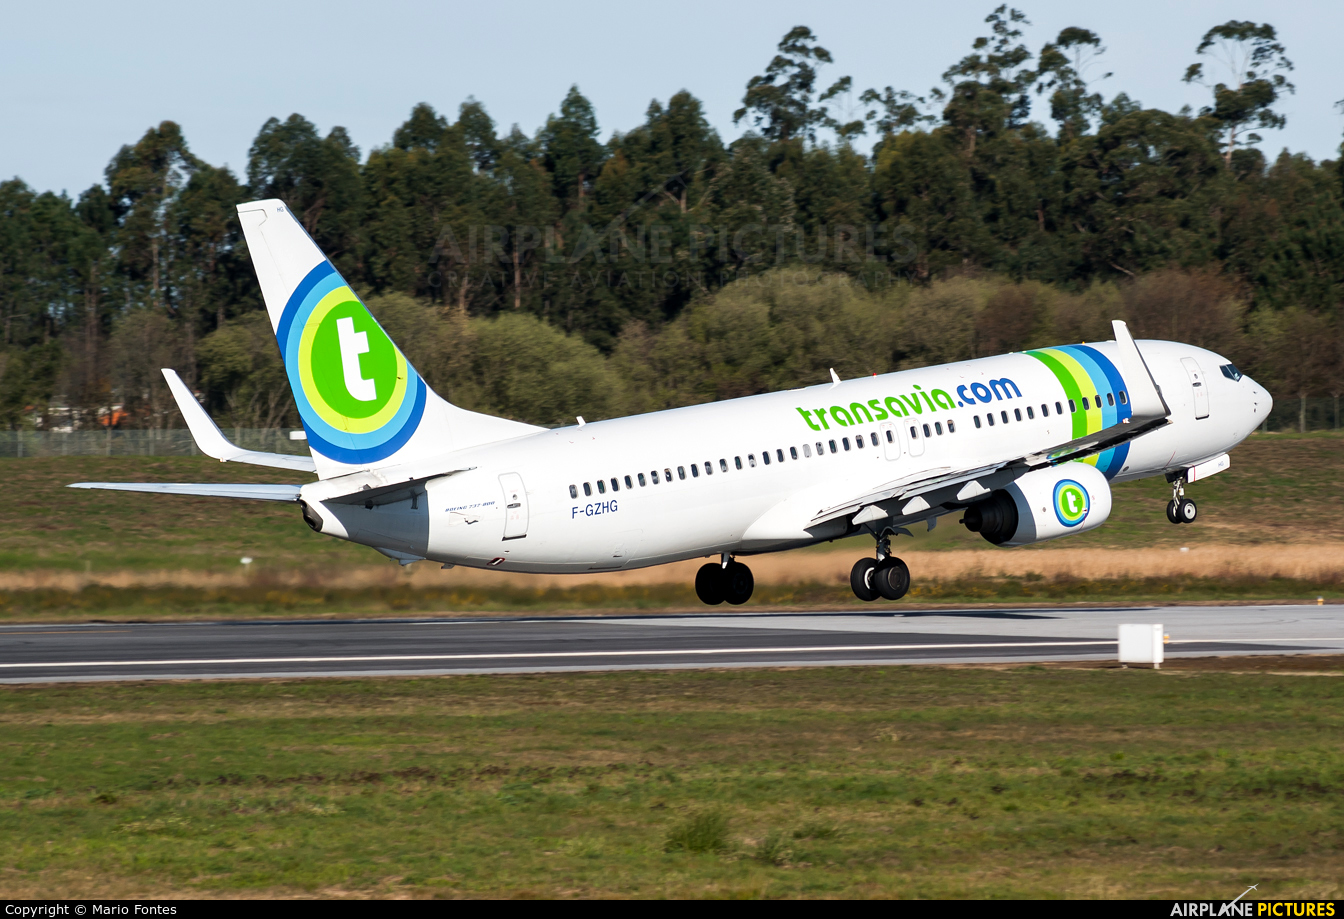 f gzhg transavia france boeing 737 800 at porto photo id 537945 airplane. Black Bedroom Furniture Sets. Home Design Ideas